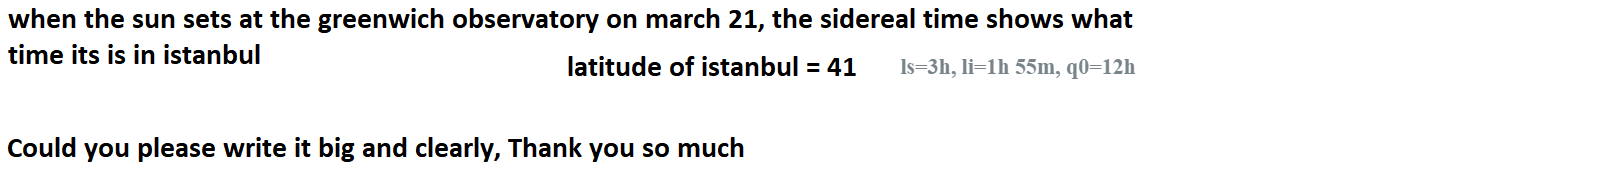 when the sun sets at the greenwich observatory on march 21, the sidereal time shows what time its is in istanbul latitude of